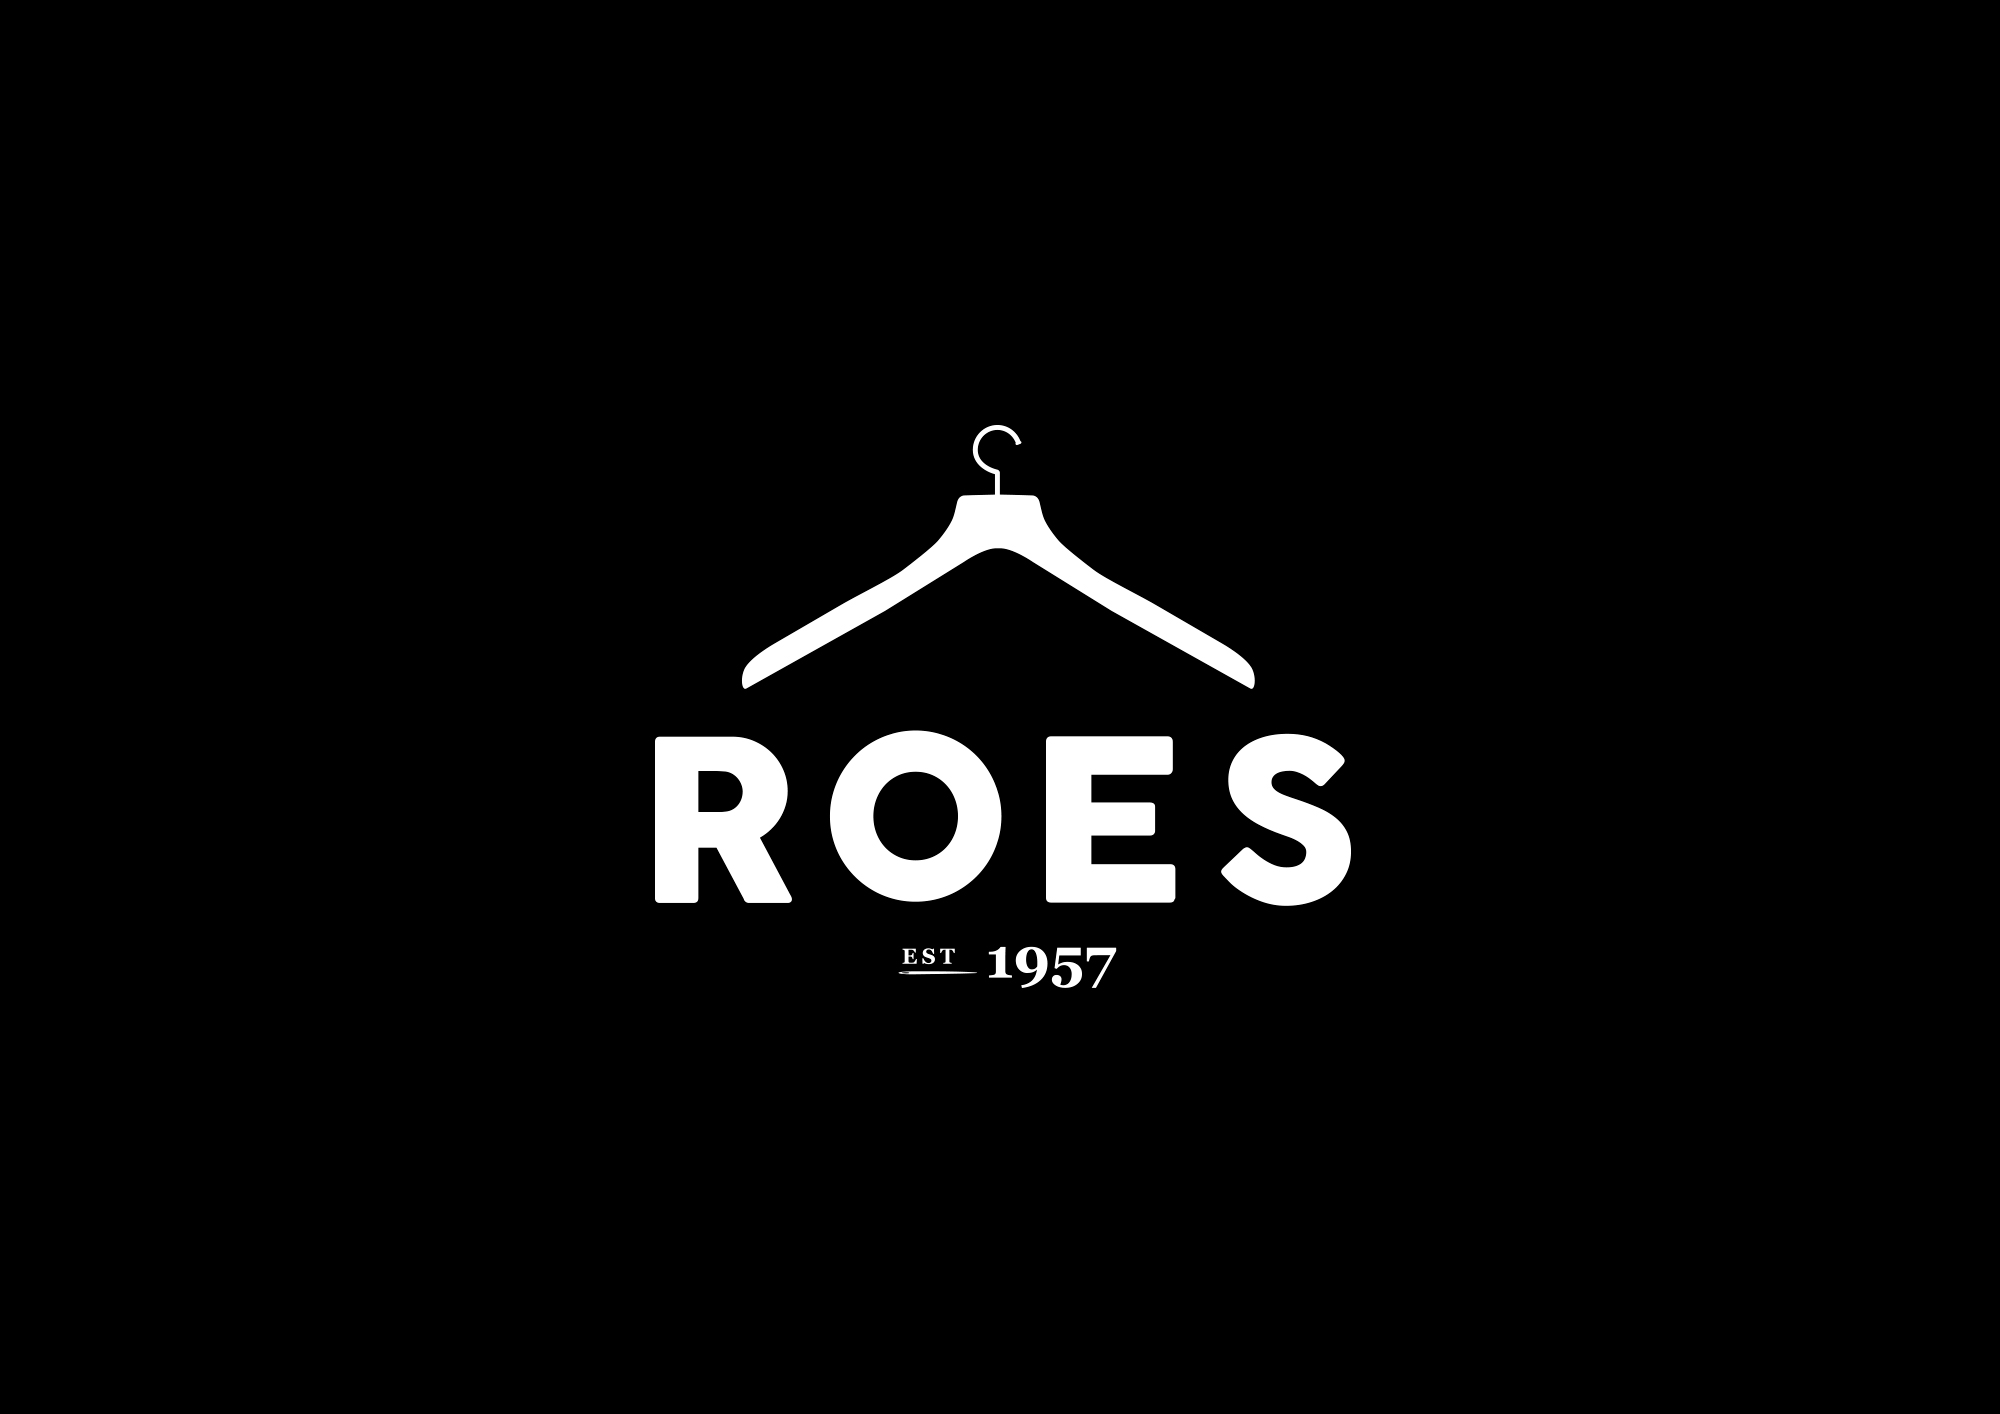 THE-OFFICE_roes17.jpg